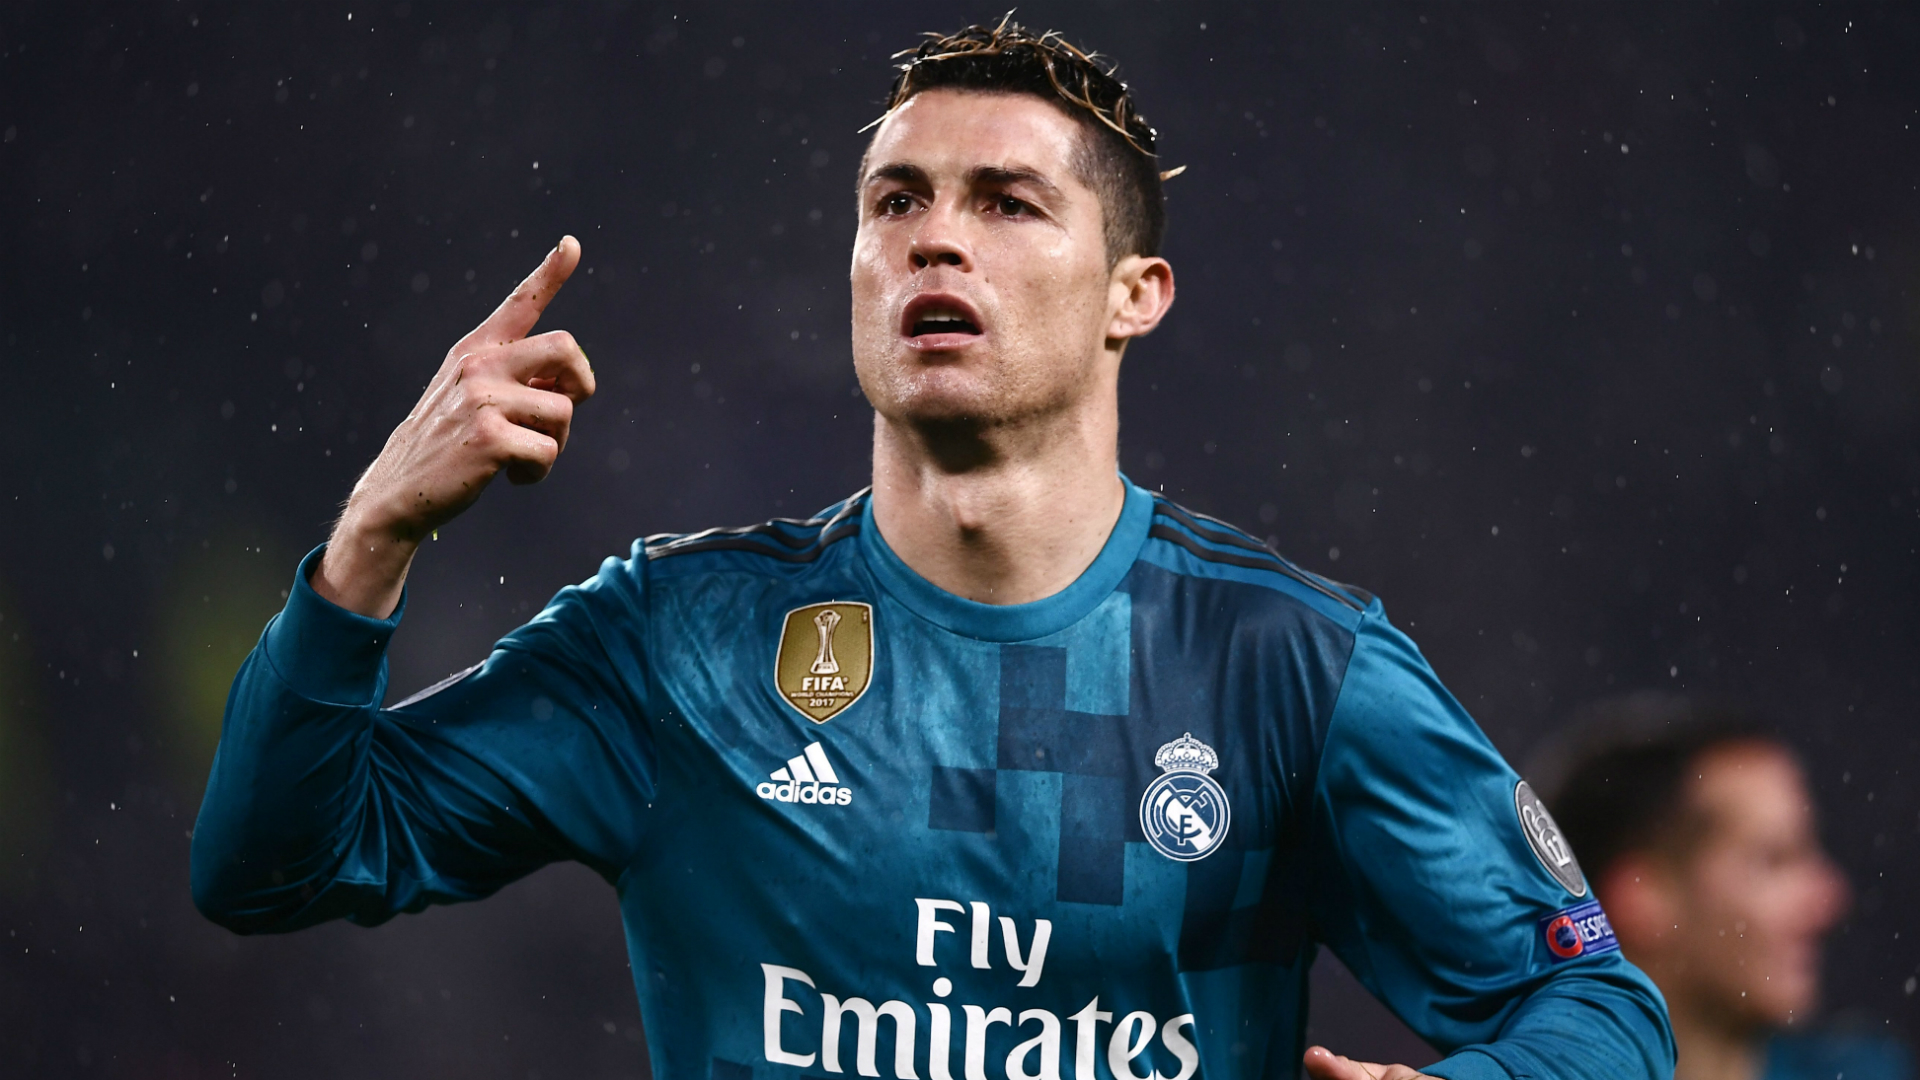 Ronaldo thanks Juventus supporters for applauding his goal